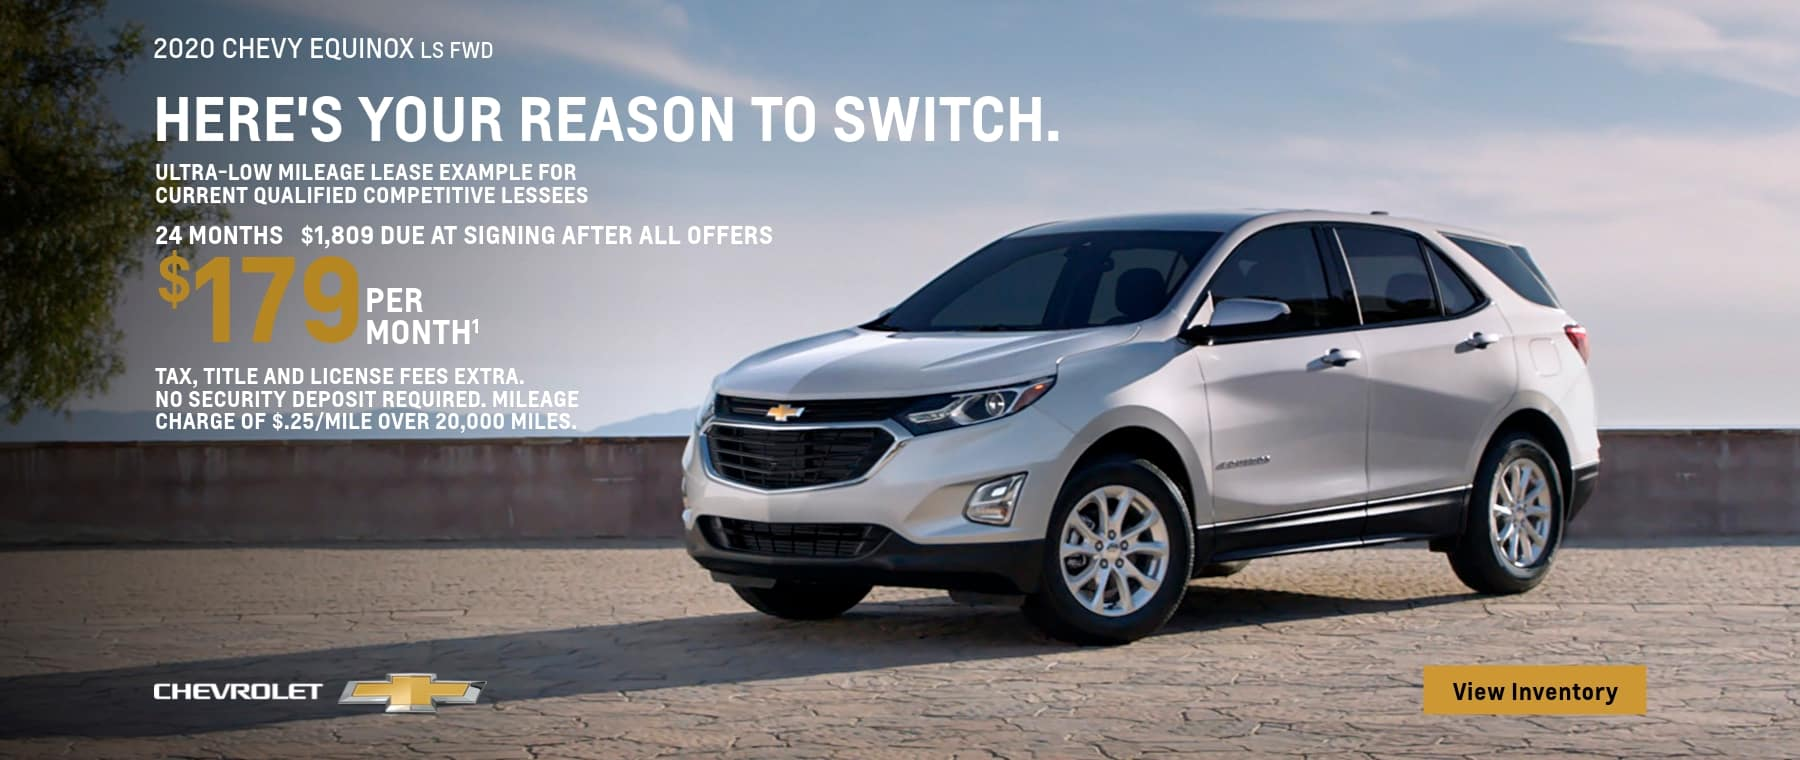 2020 Equinox LS FWD Ultra-Low Mileage Lease Examples for Qualified Lessees $179 per month.